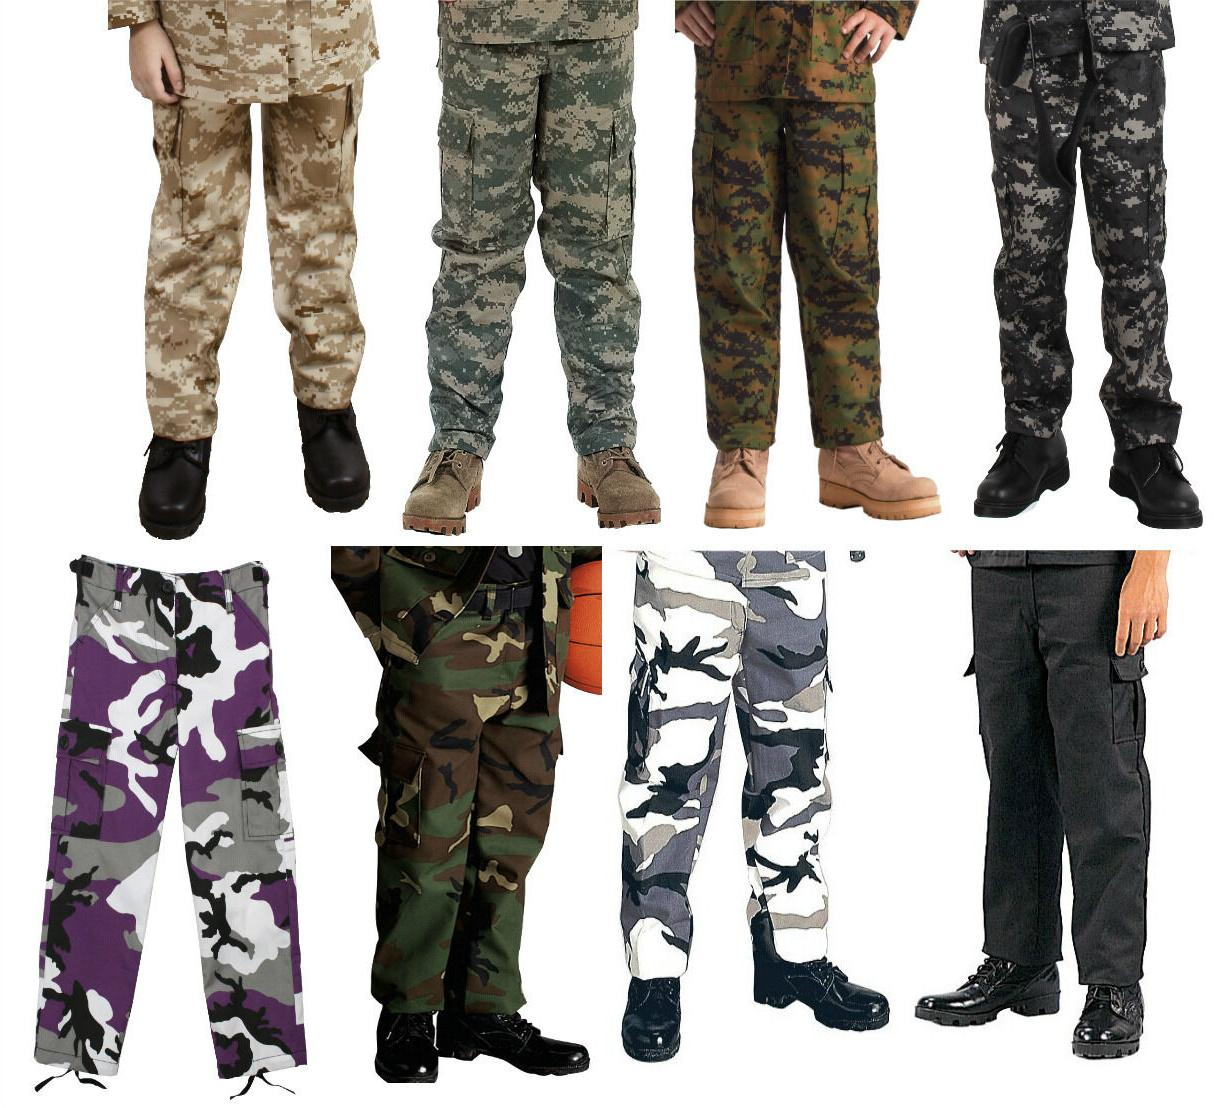 kids bdu cargo fatigue pants camouflage military